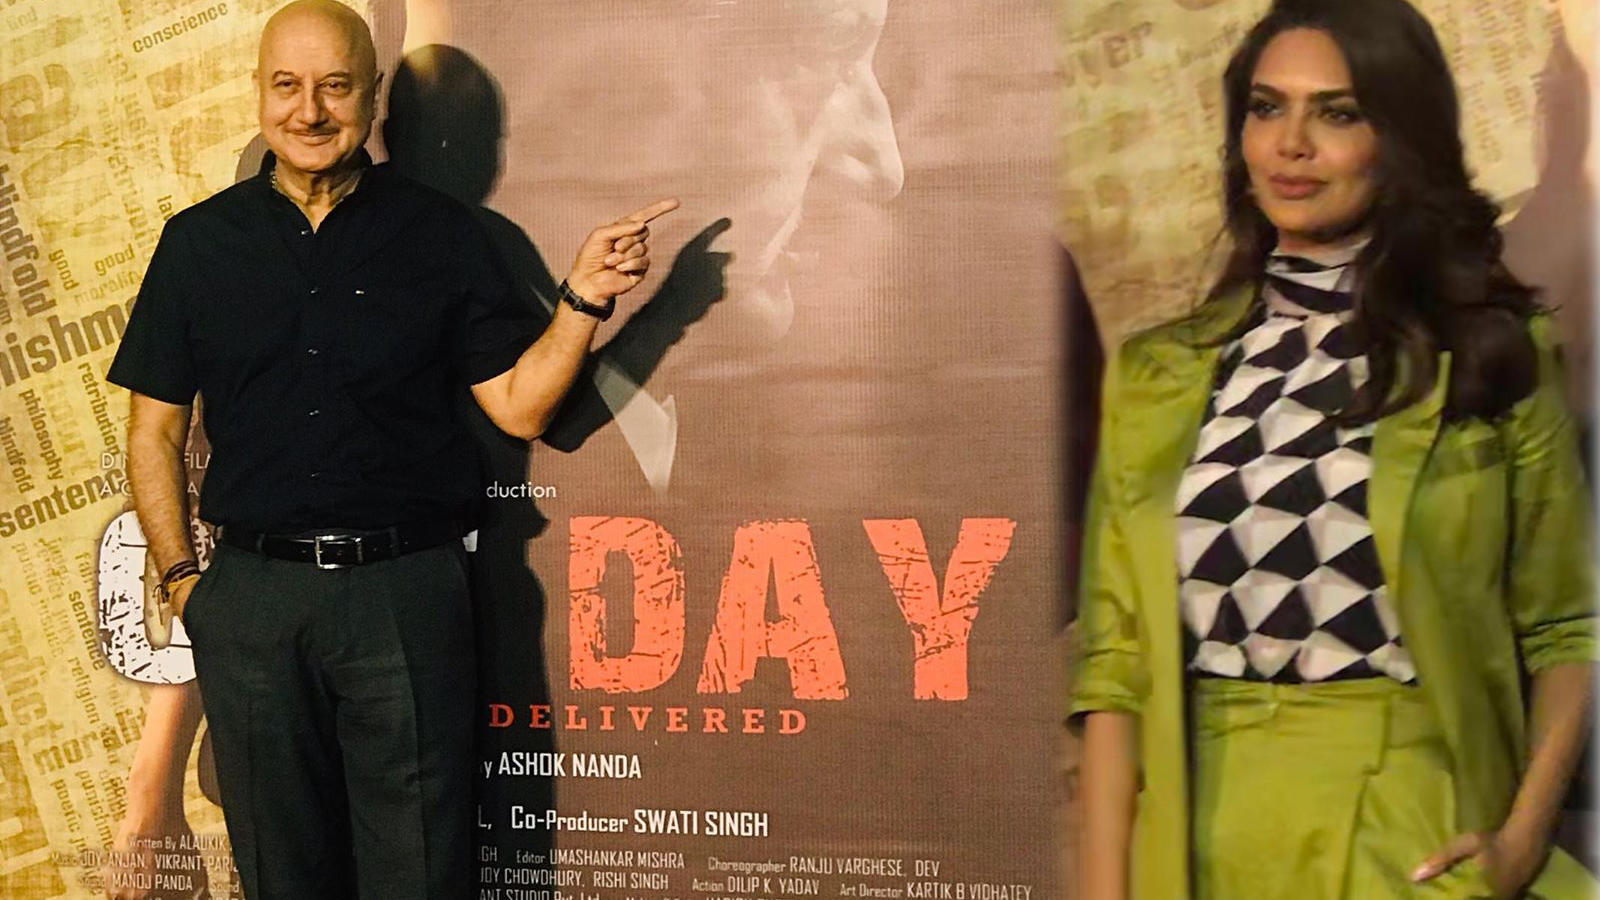 Anupam Kher and Esha Gupta starrer 'One day' to release on June 28